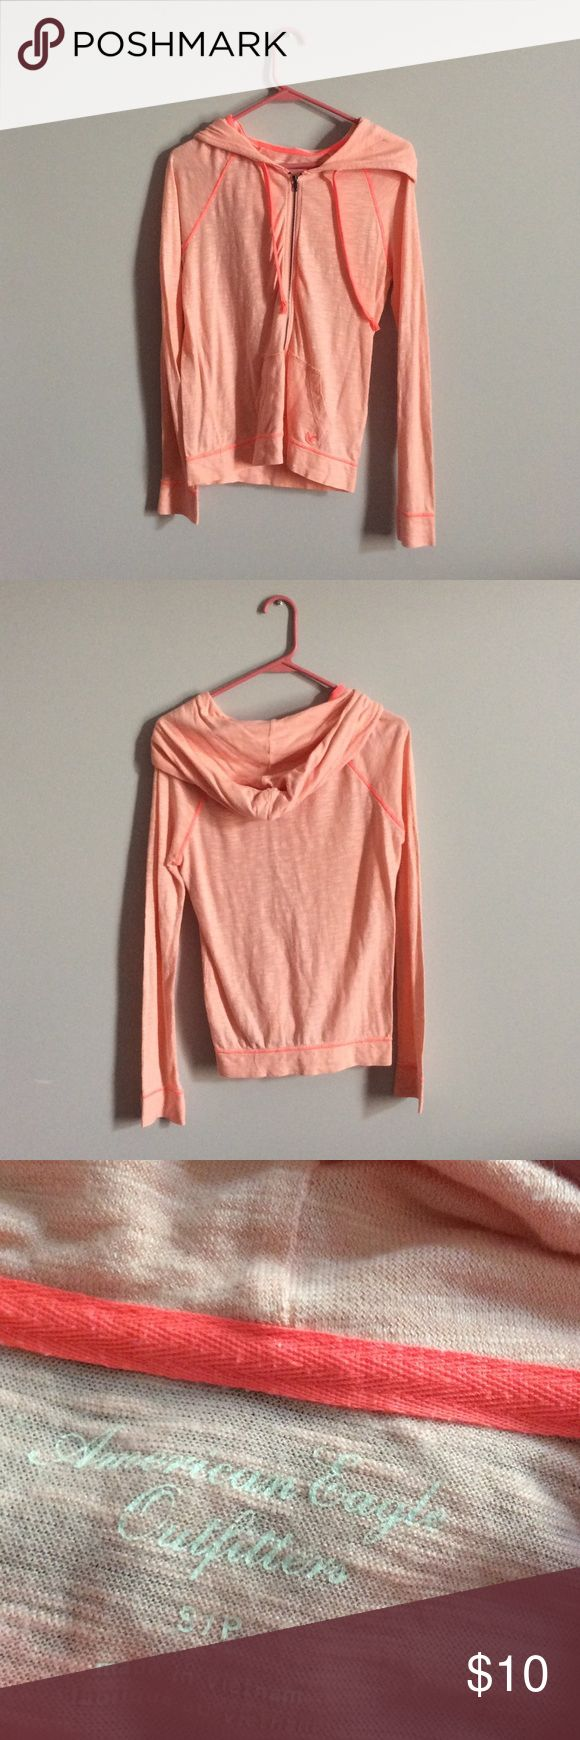 American Eagle Outfitters Coral Zip Up Coral Zip Up from American Eagle Outfitters. Good condition. American Eagle Outfitters Jackets & Coats